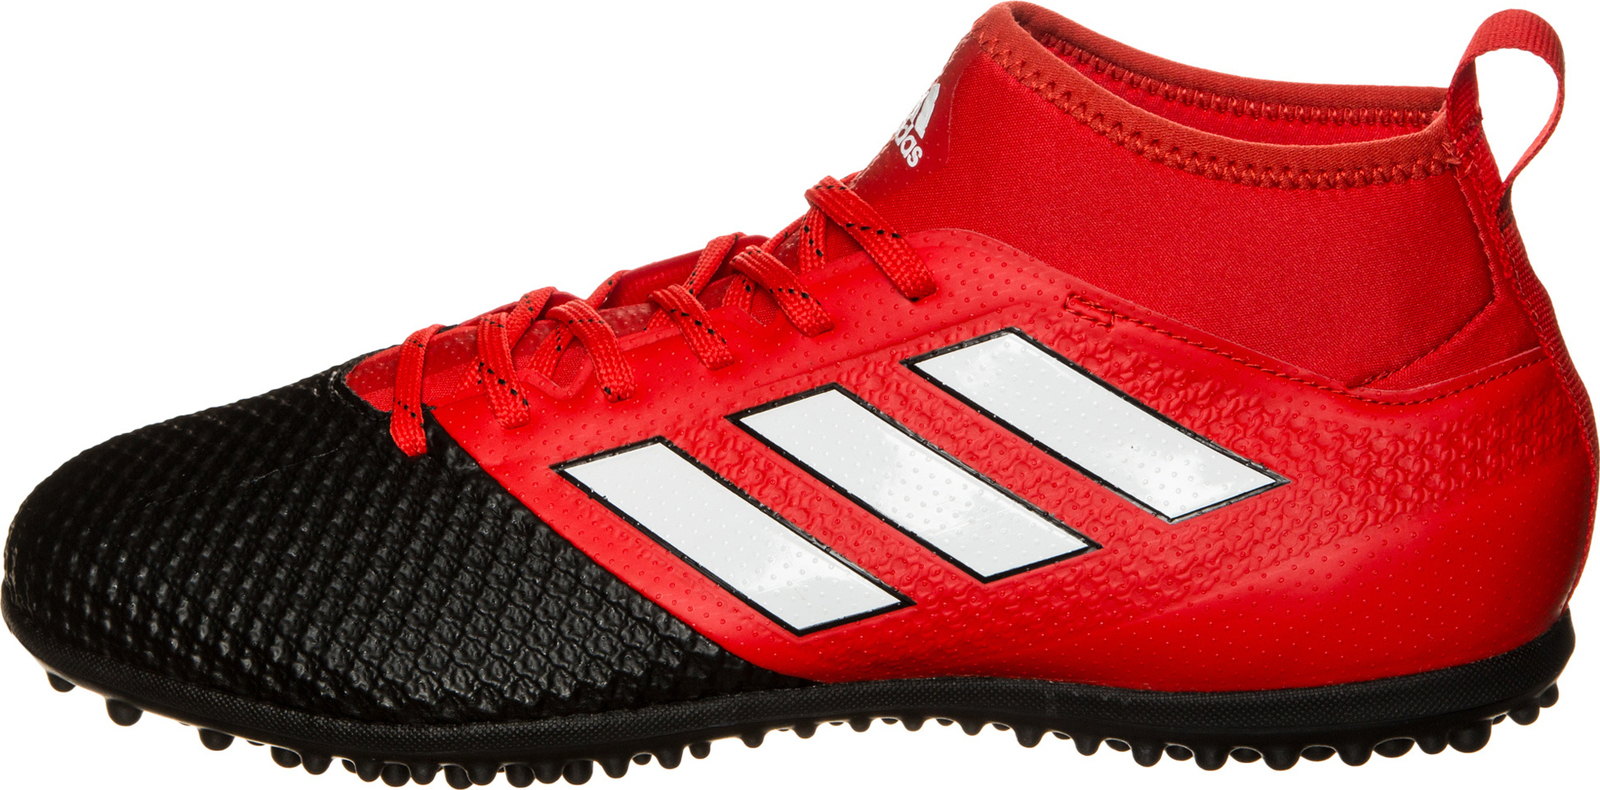 official photos 61941 198bc Adidas Ace 17.3 Primemesh Astro Turf BB0861